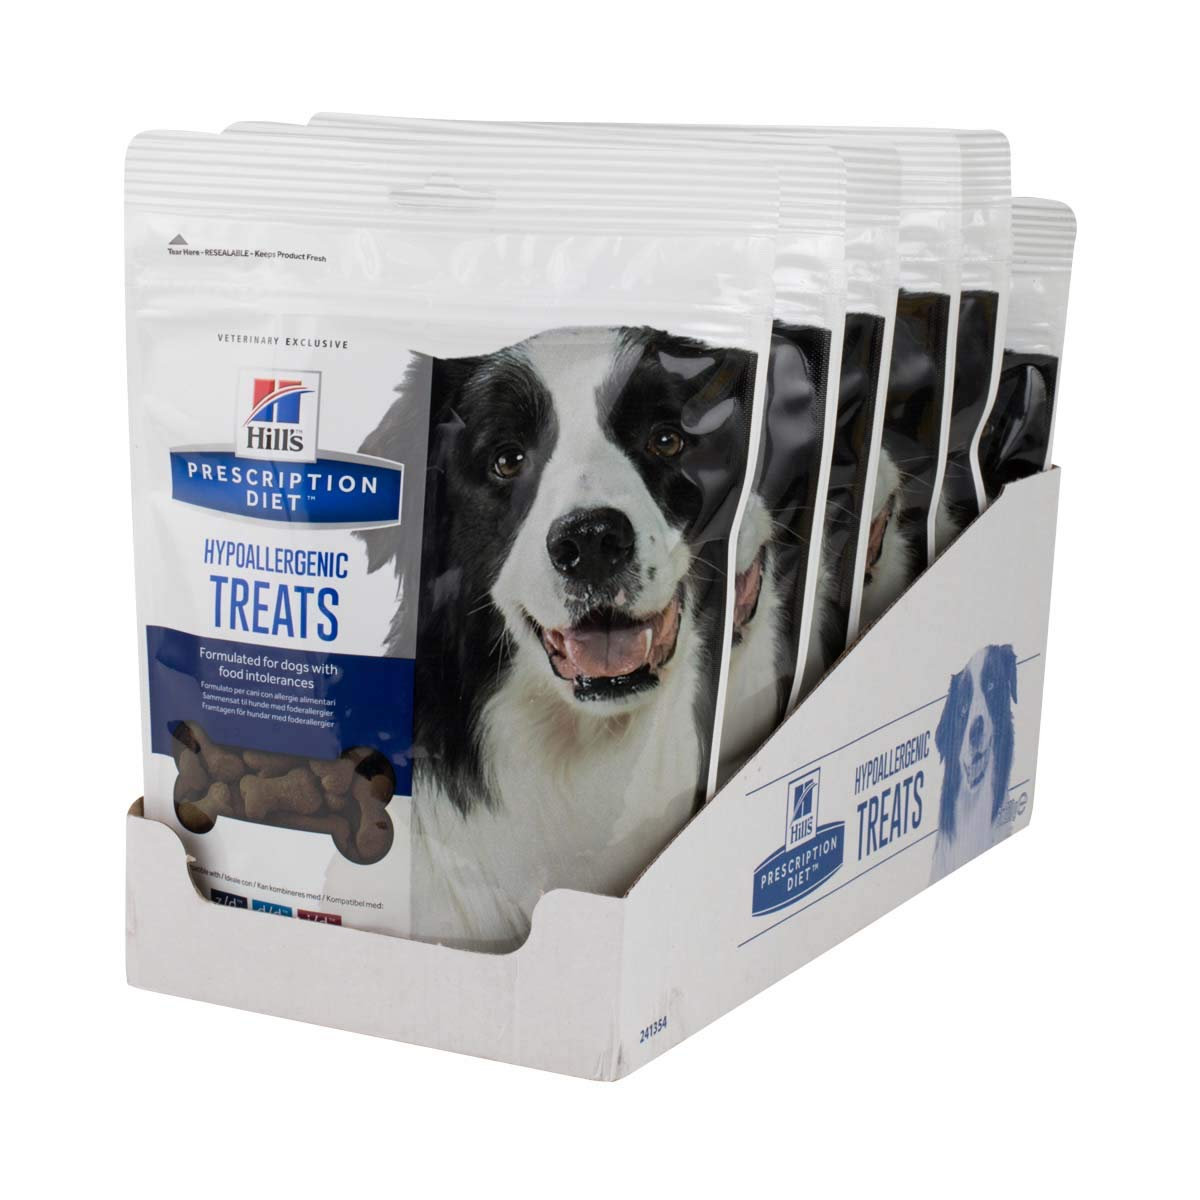 Hill's Prescription Diet Hypoallergenic Canine Treats - 6 Pack 12oz. Bags (6 Bags per Order!) by Hill's Prescription Diet Hypoallergenic Canine Treats 12oz.